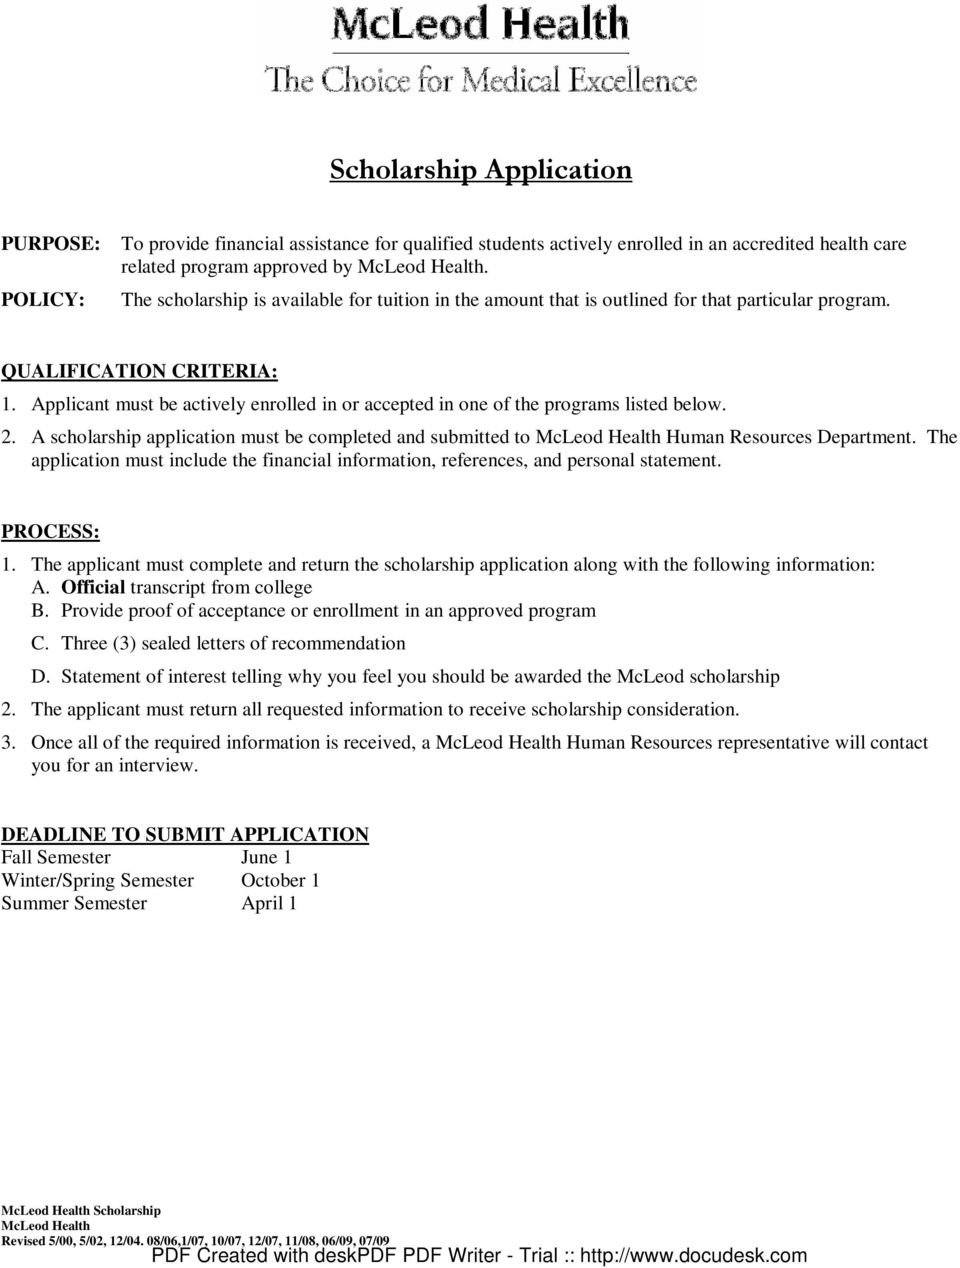 Applicant must be actively enrolled in or accepted in one of the programs listed below. 2. A scholarship application must be completed and submitted to McLeod Health Human Resources Department.